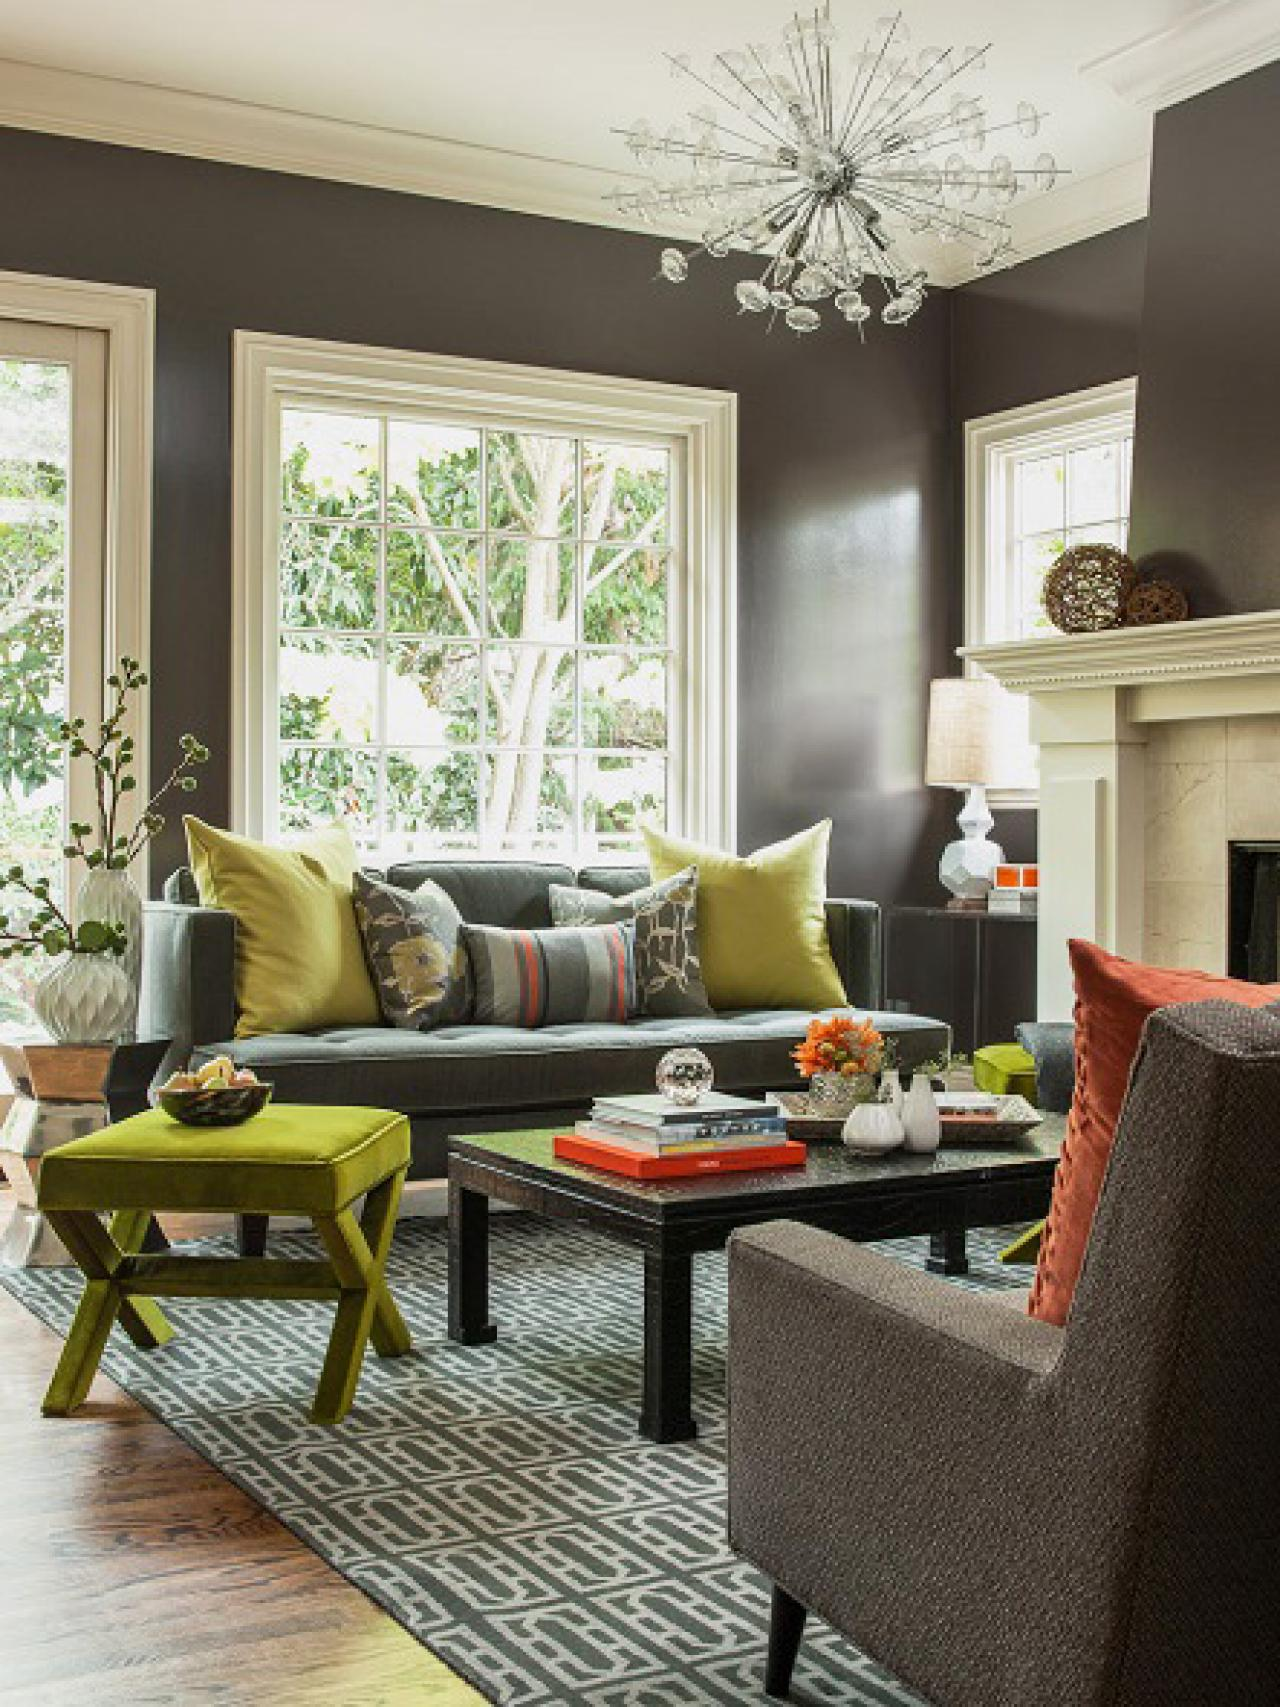 Color Theory and Living Room Design. Color Theory and Living Room Design   HGTV